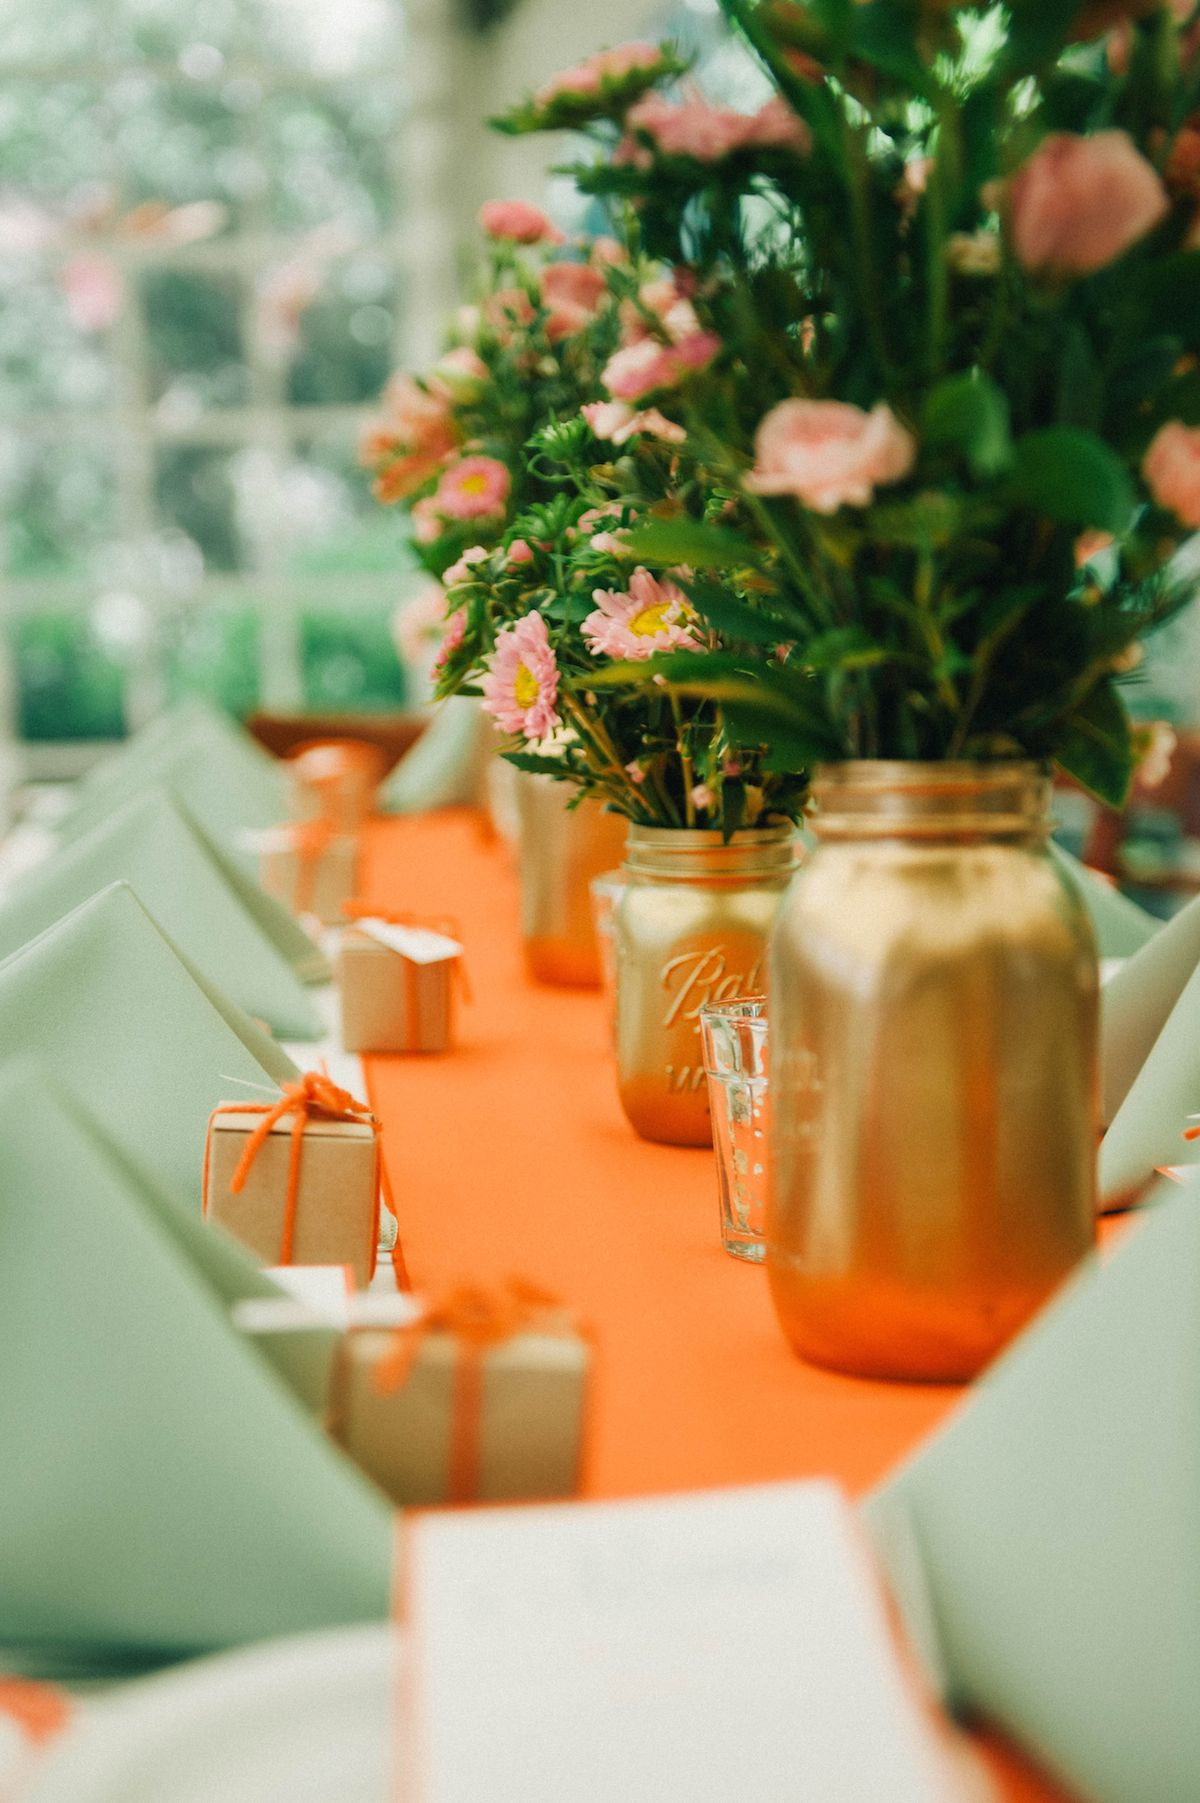 All that glitters is gold at this springtime bridal shower bridal